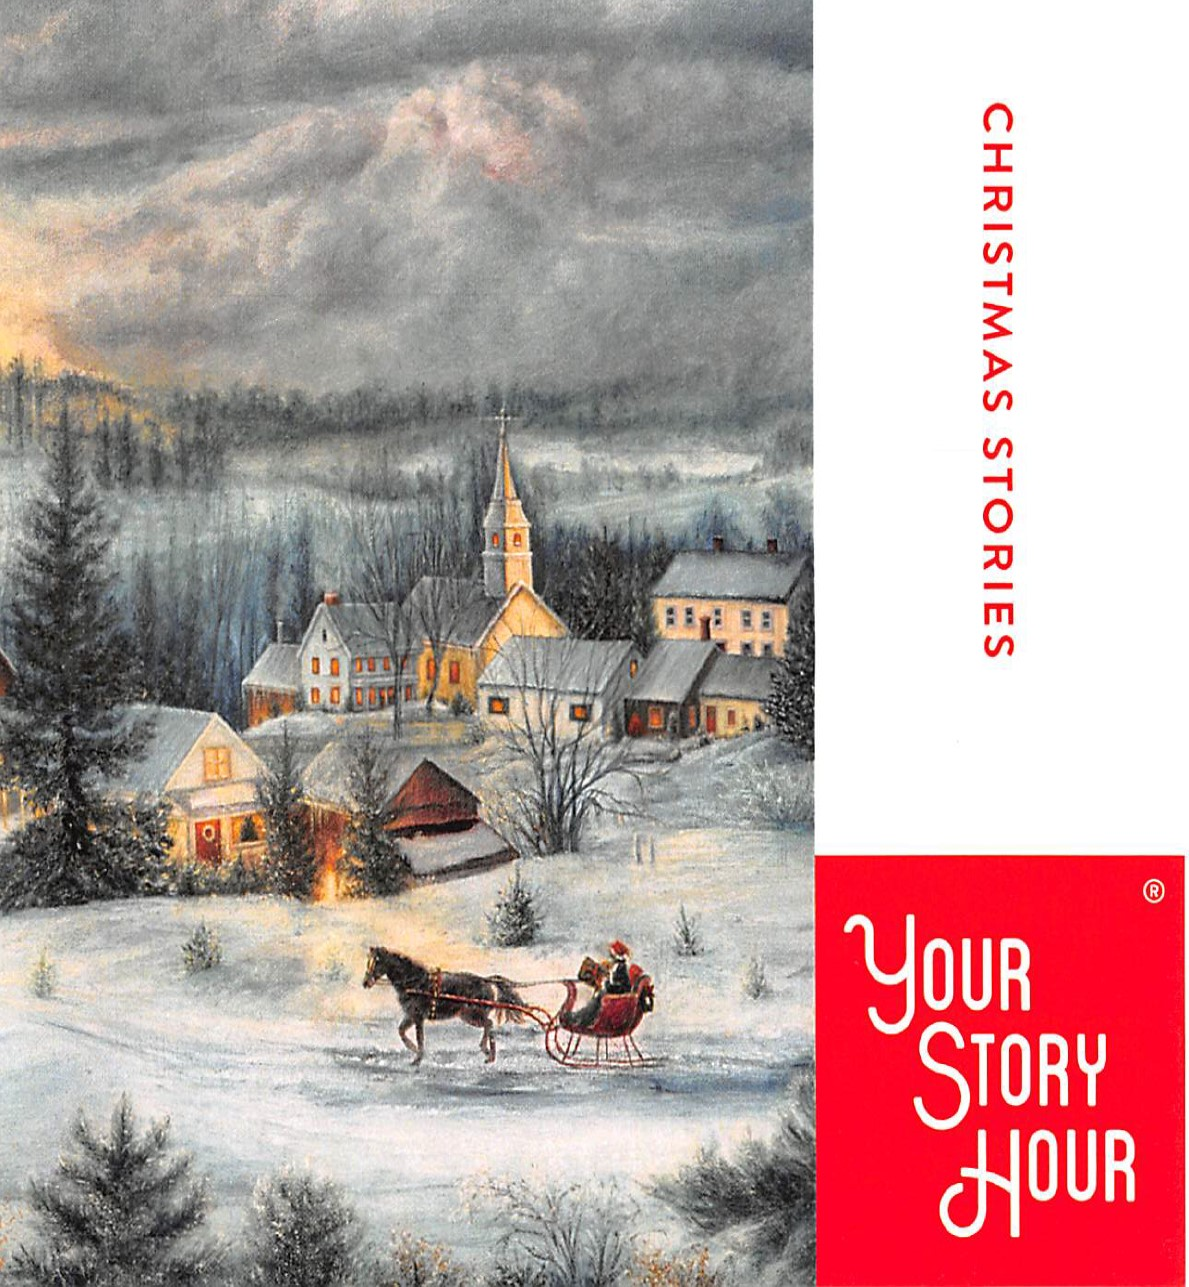 Your Story Hour Christmas Stories